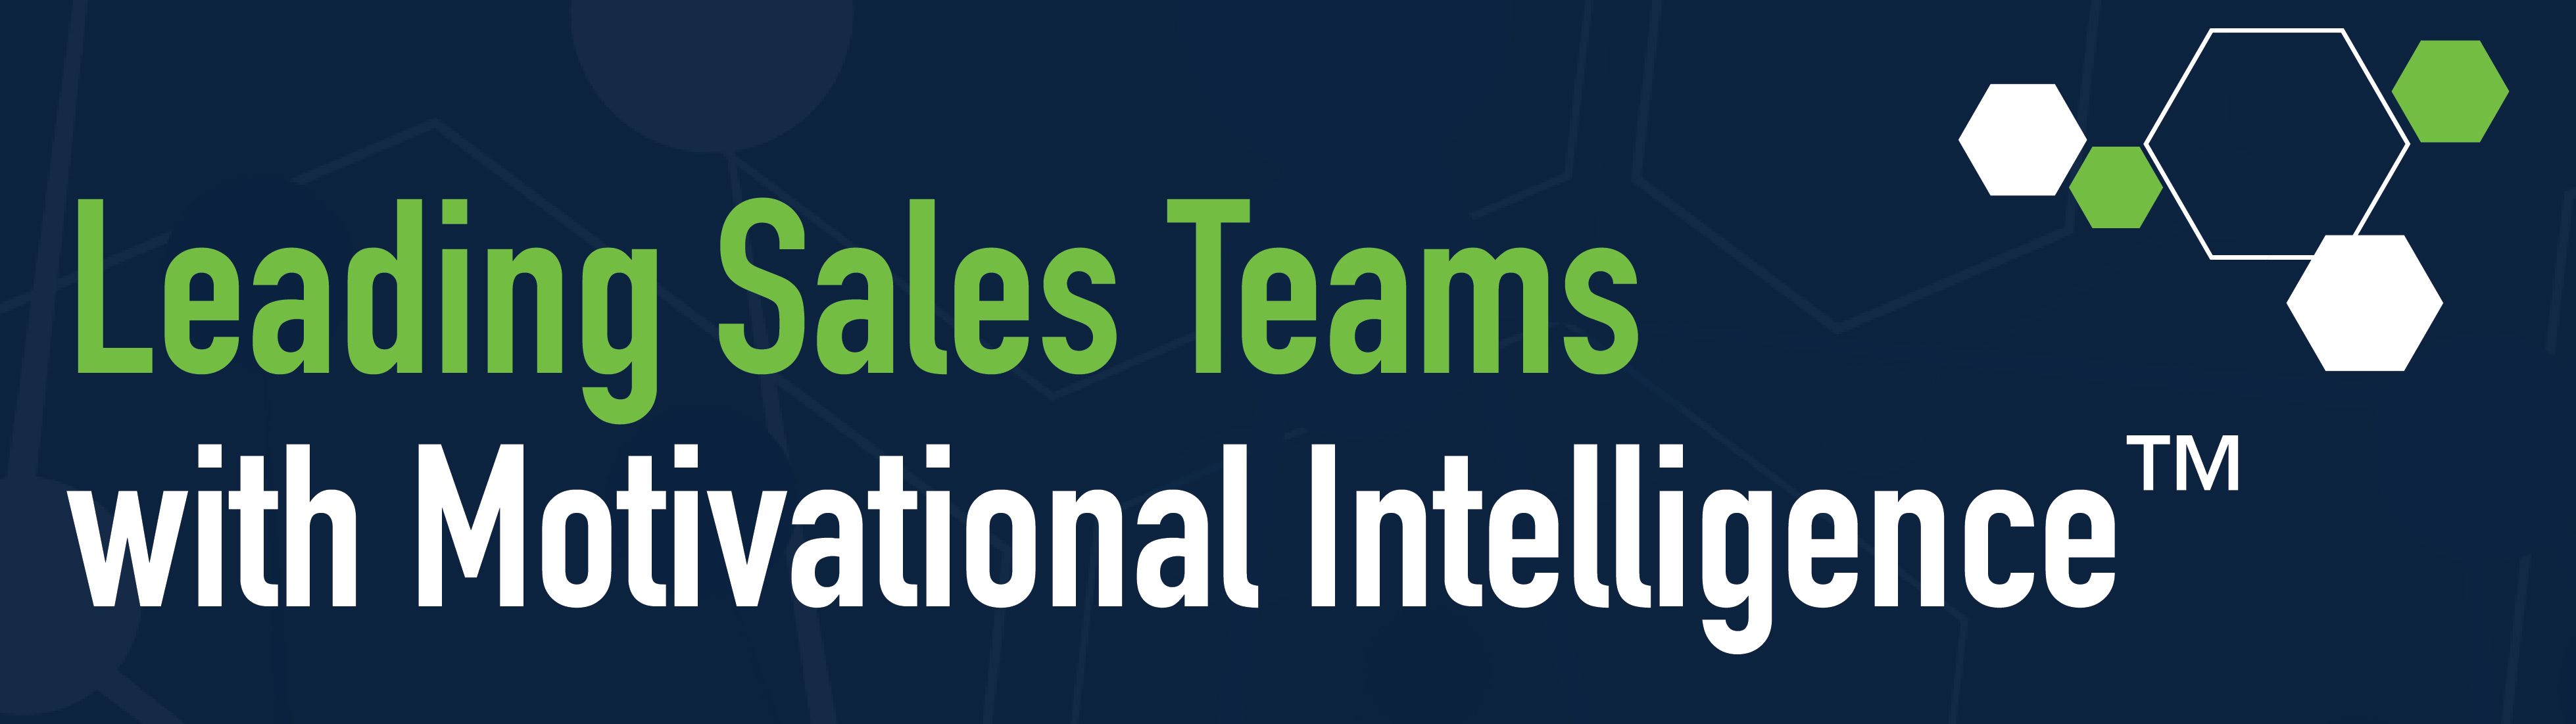 Leading Sales Teams with Motivational Intelligence™